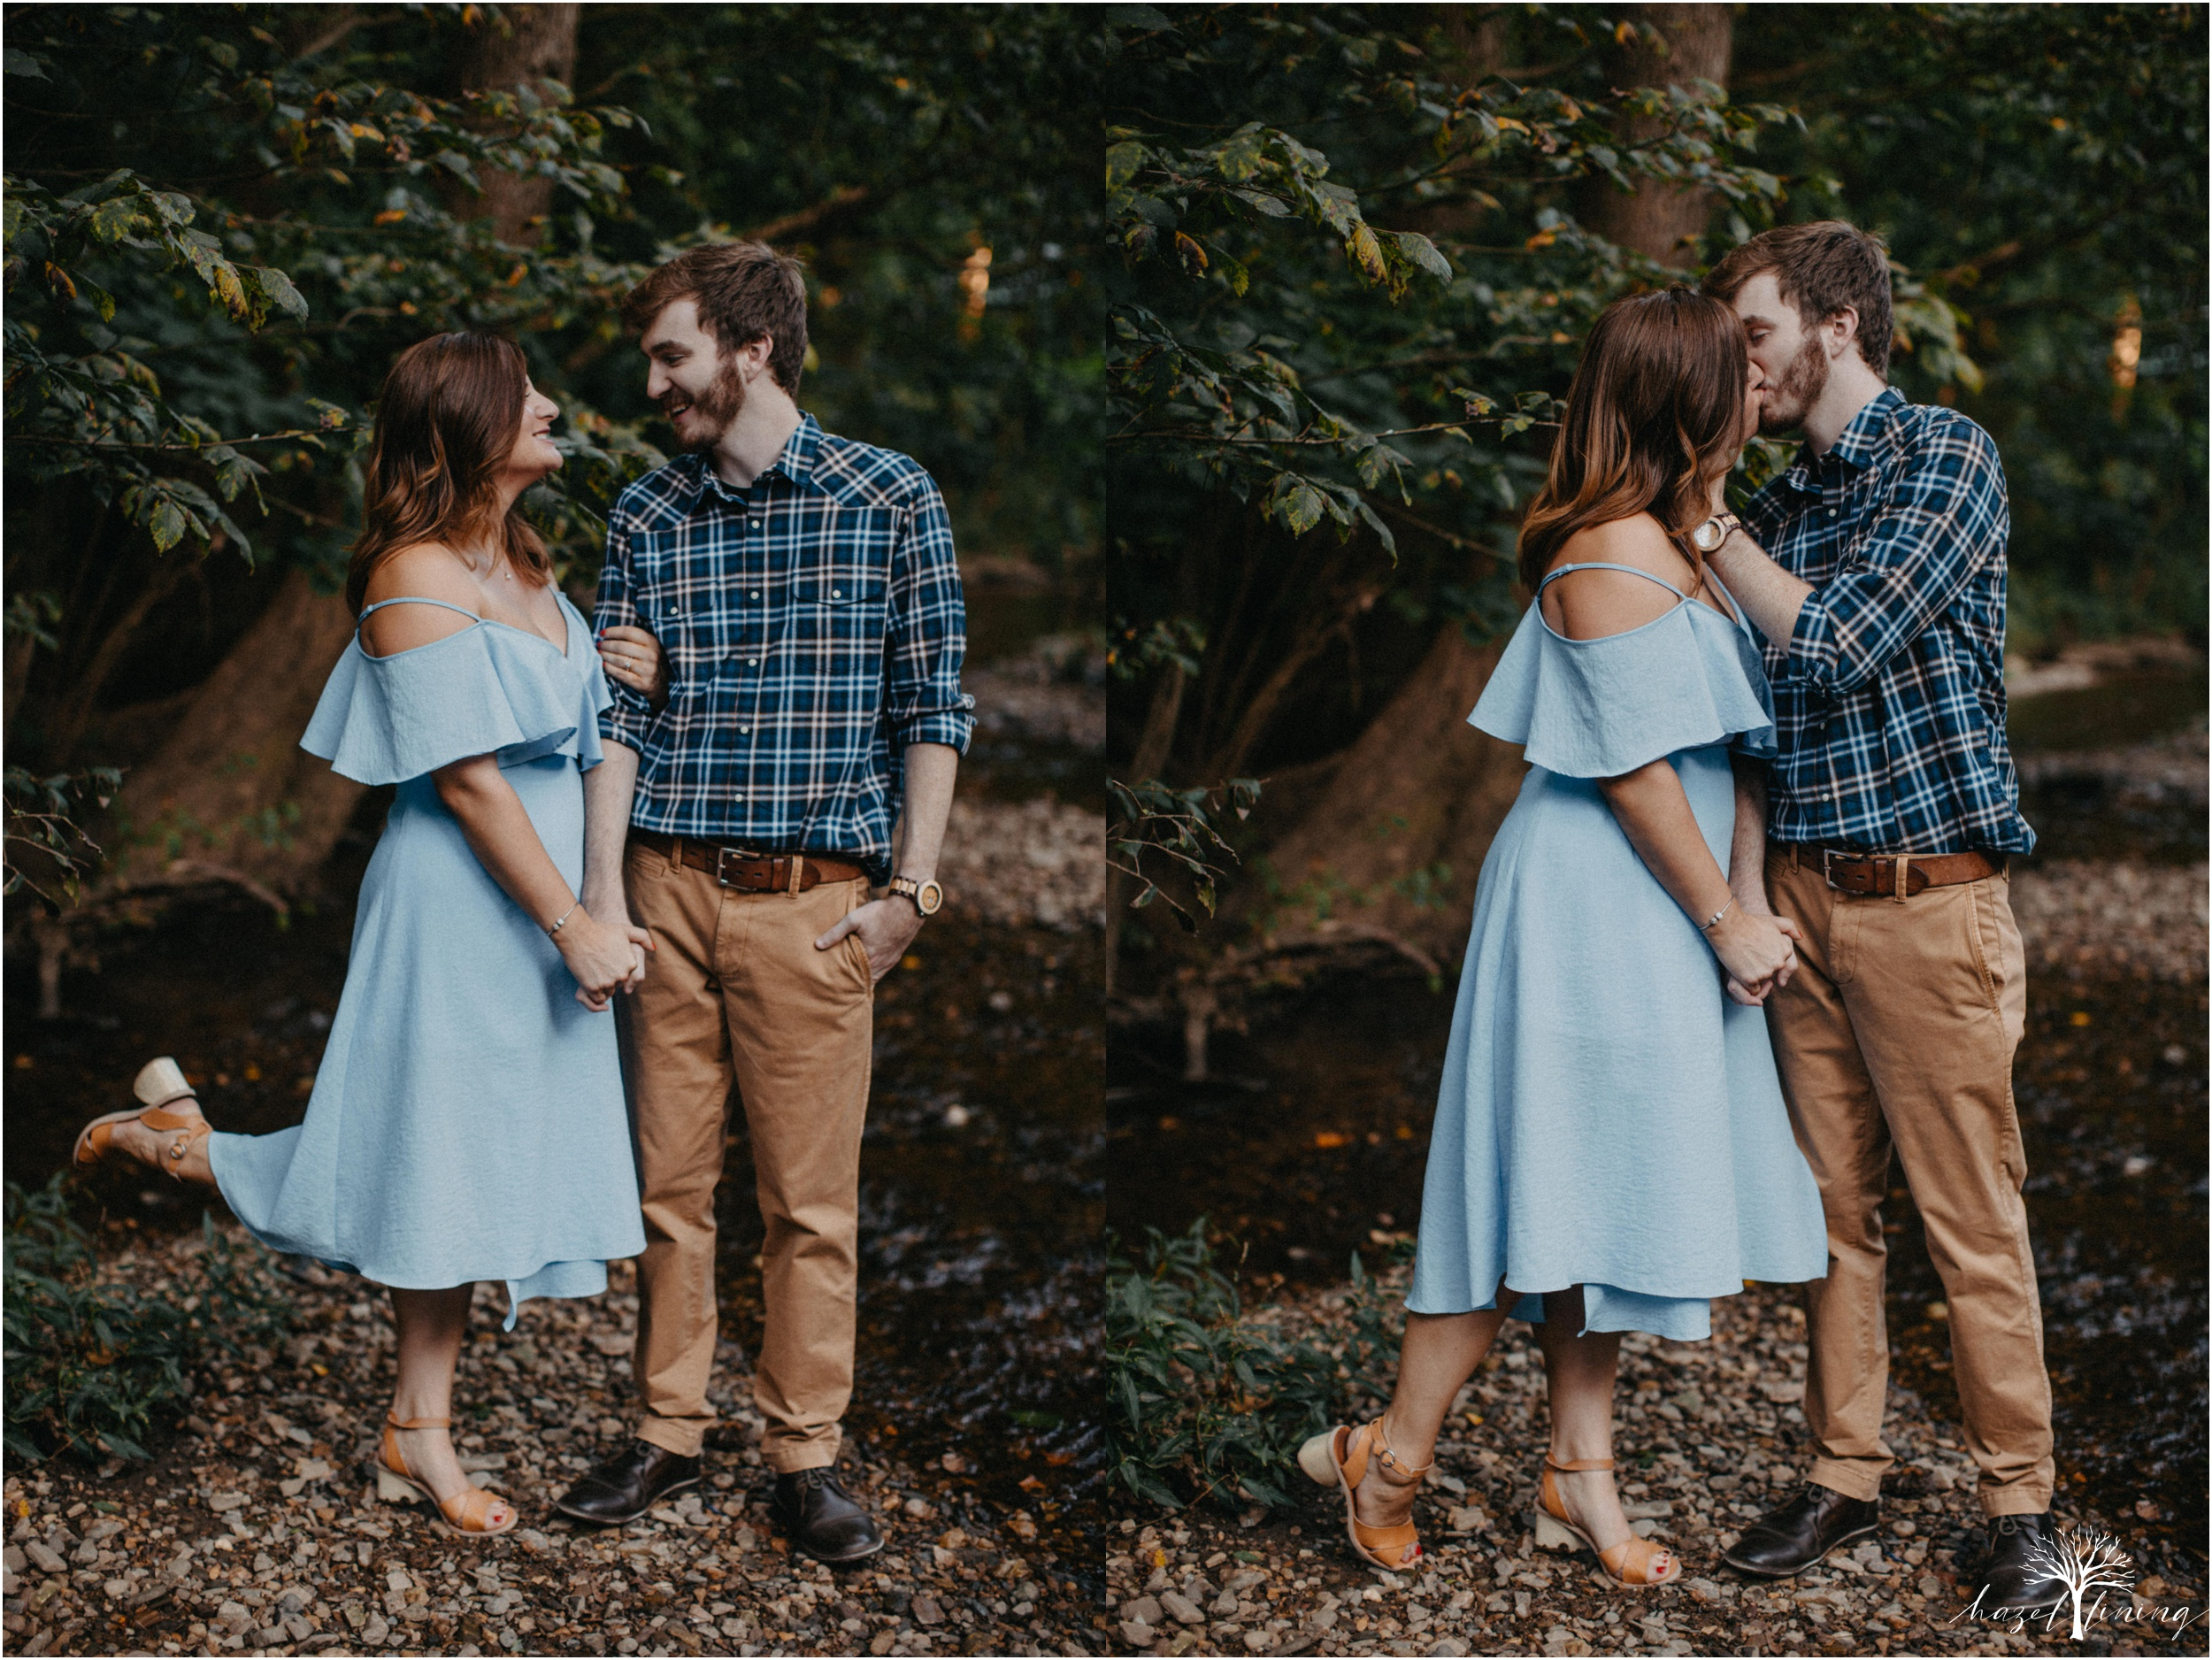 paige-kochey-chris-graham-valley-green-wissahickon-park-philadelphia-summer-engagement-session-hazel-lining-photography-destination-elopement-wedding-engagement-photography_0026.jpg